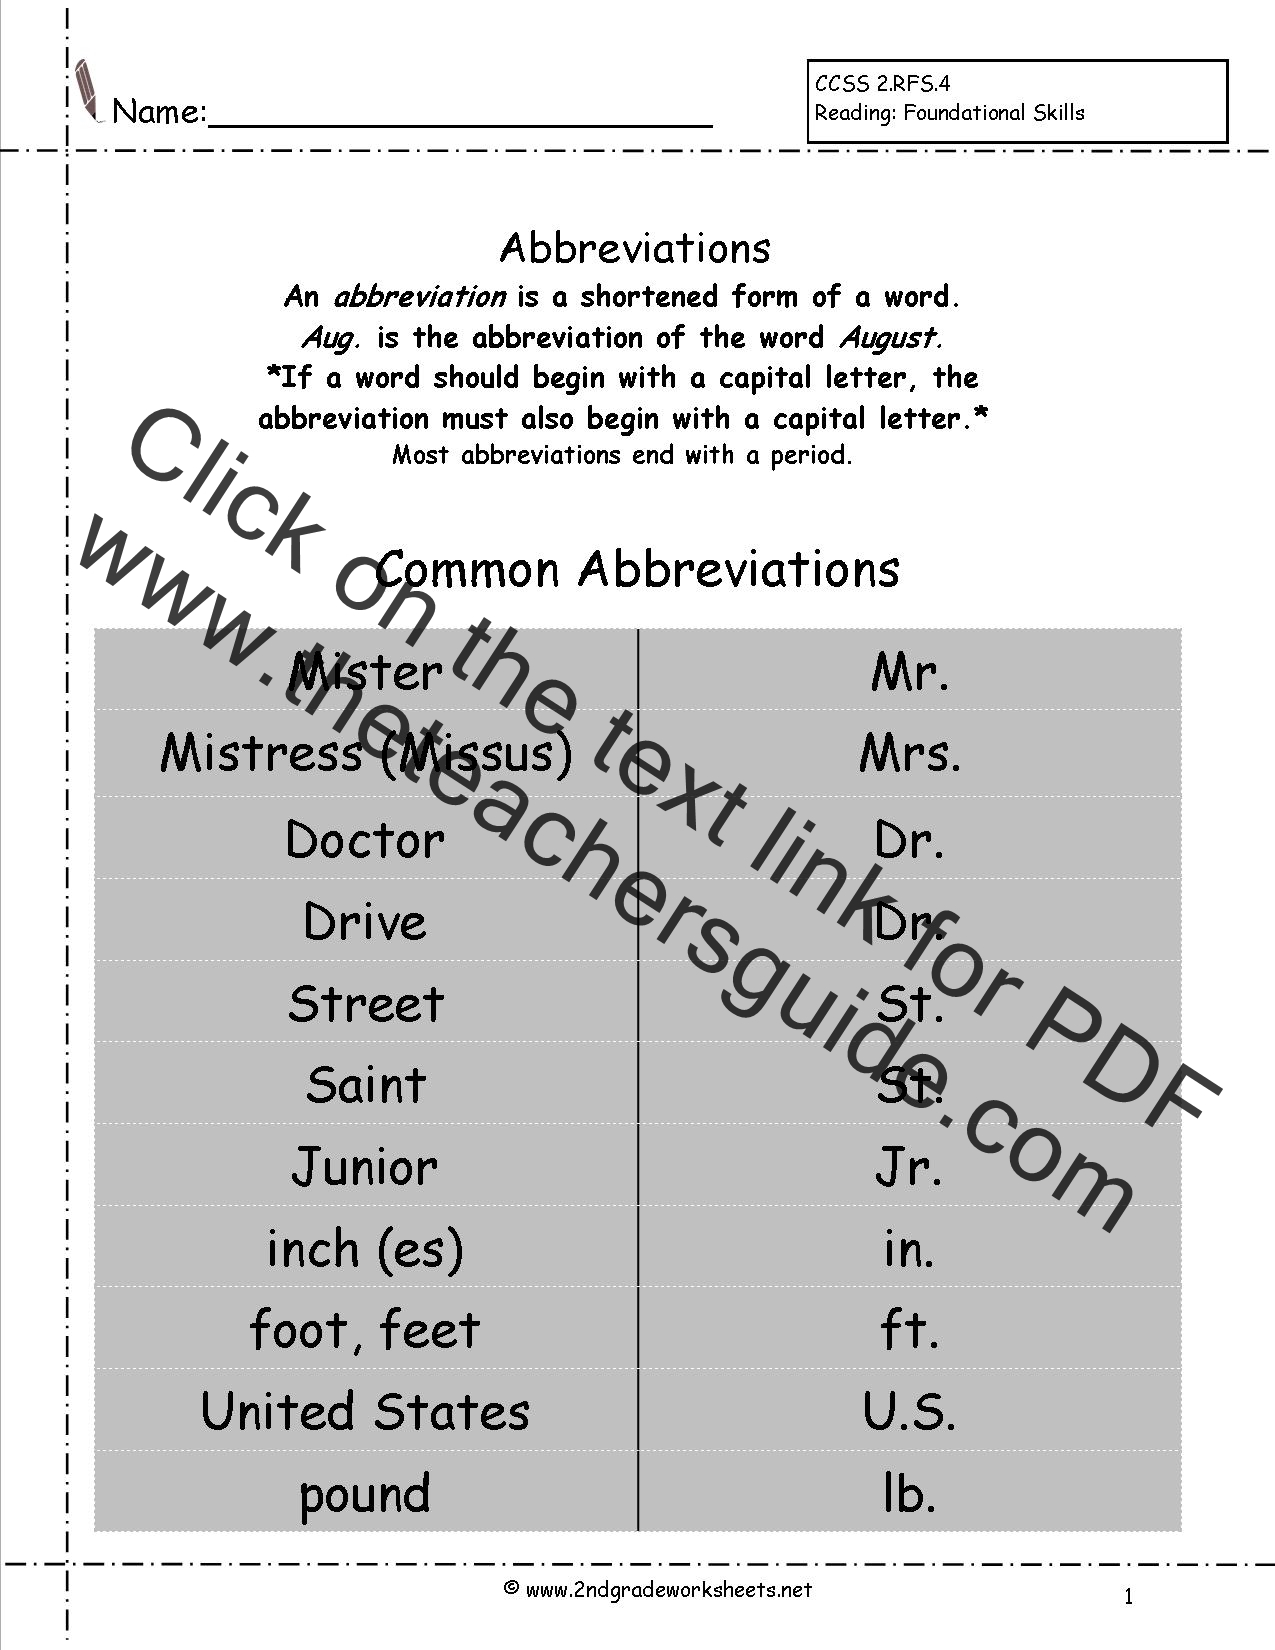 Worksheets 2nd Grade Grammar Worksheets Free free languagegrammar worksheets and printouts abbreviaitons worksheets